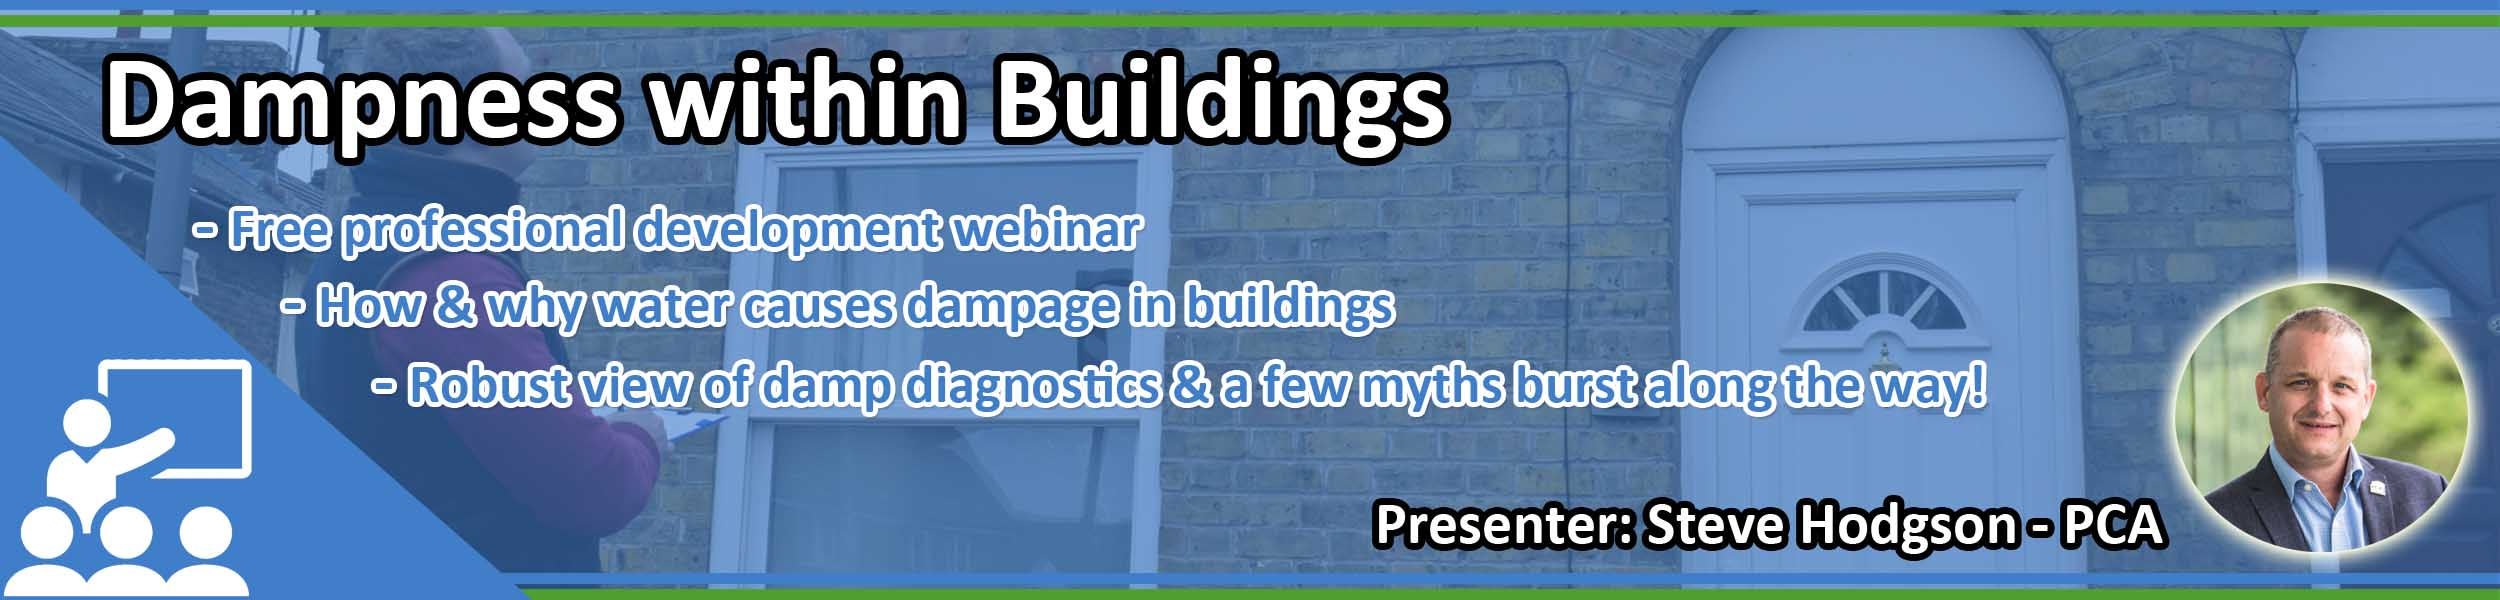 Dampness within buildings webinar